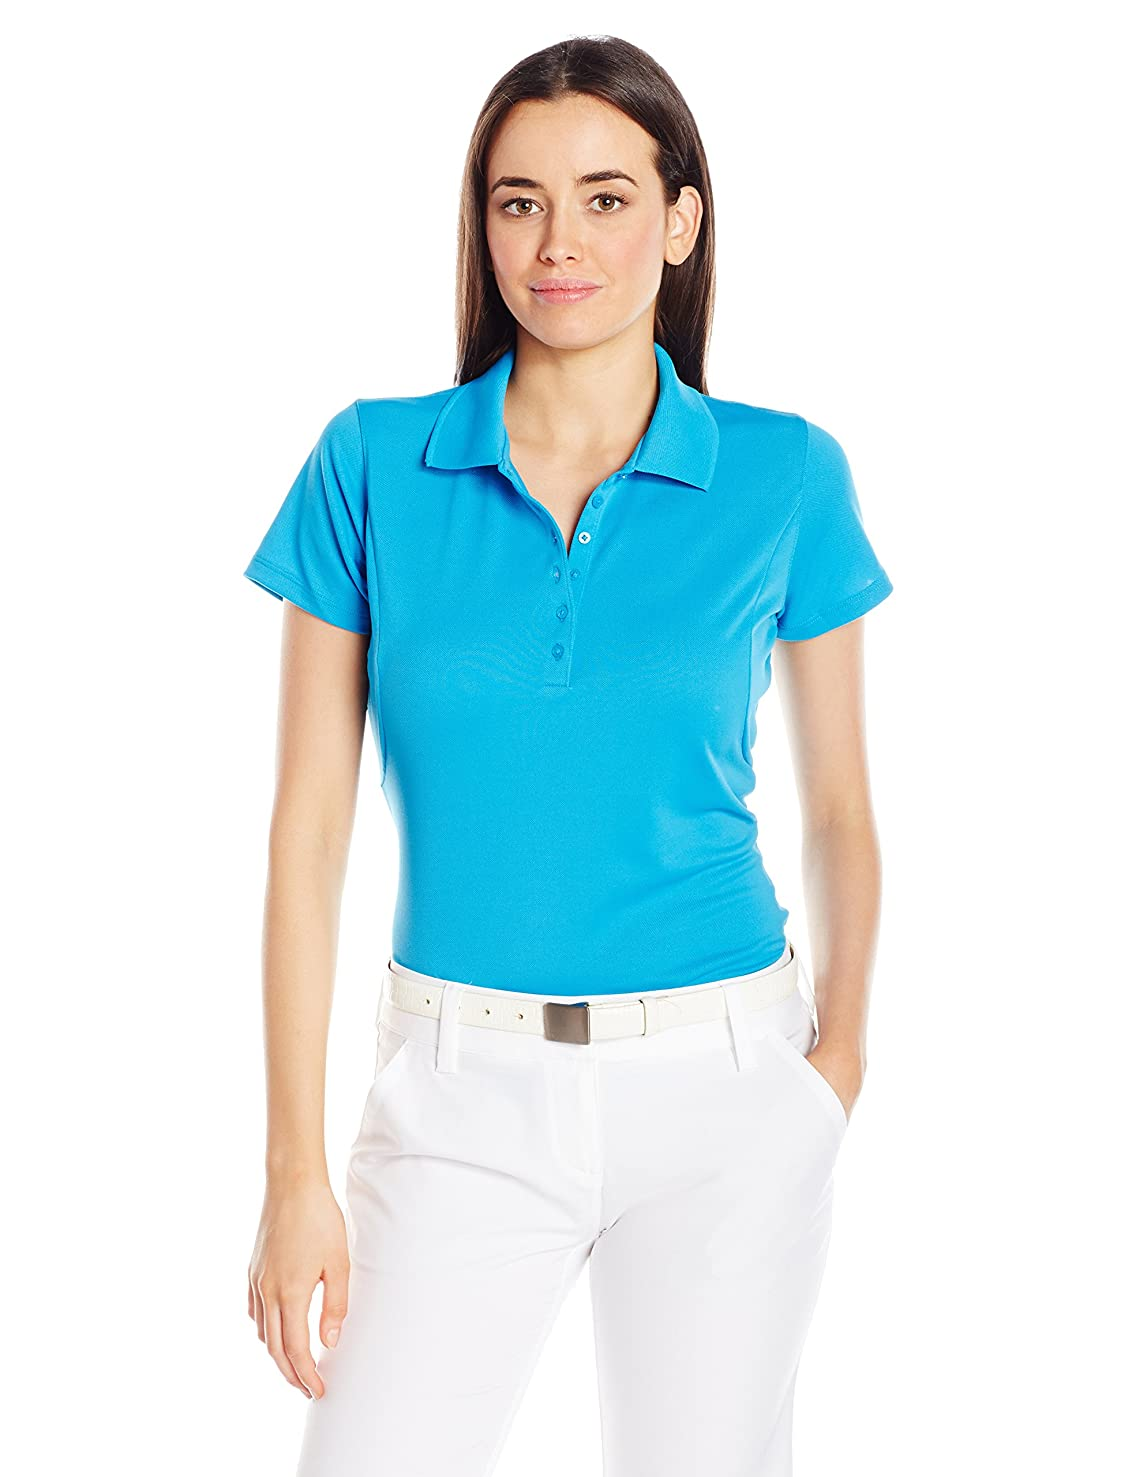 Antigua Women's Pique Xtra-Lite Desert Dry Polo Shirt